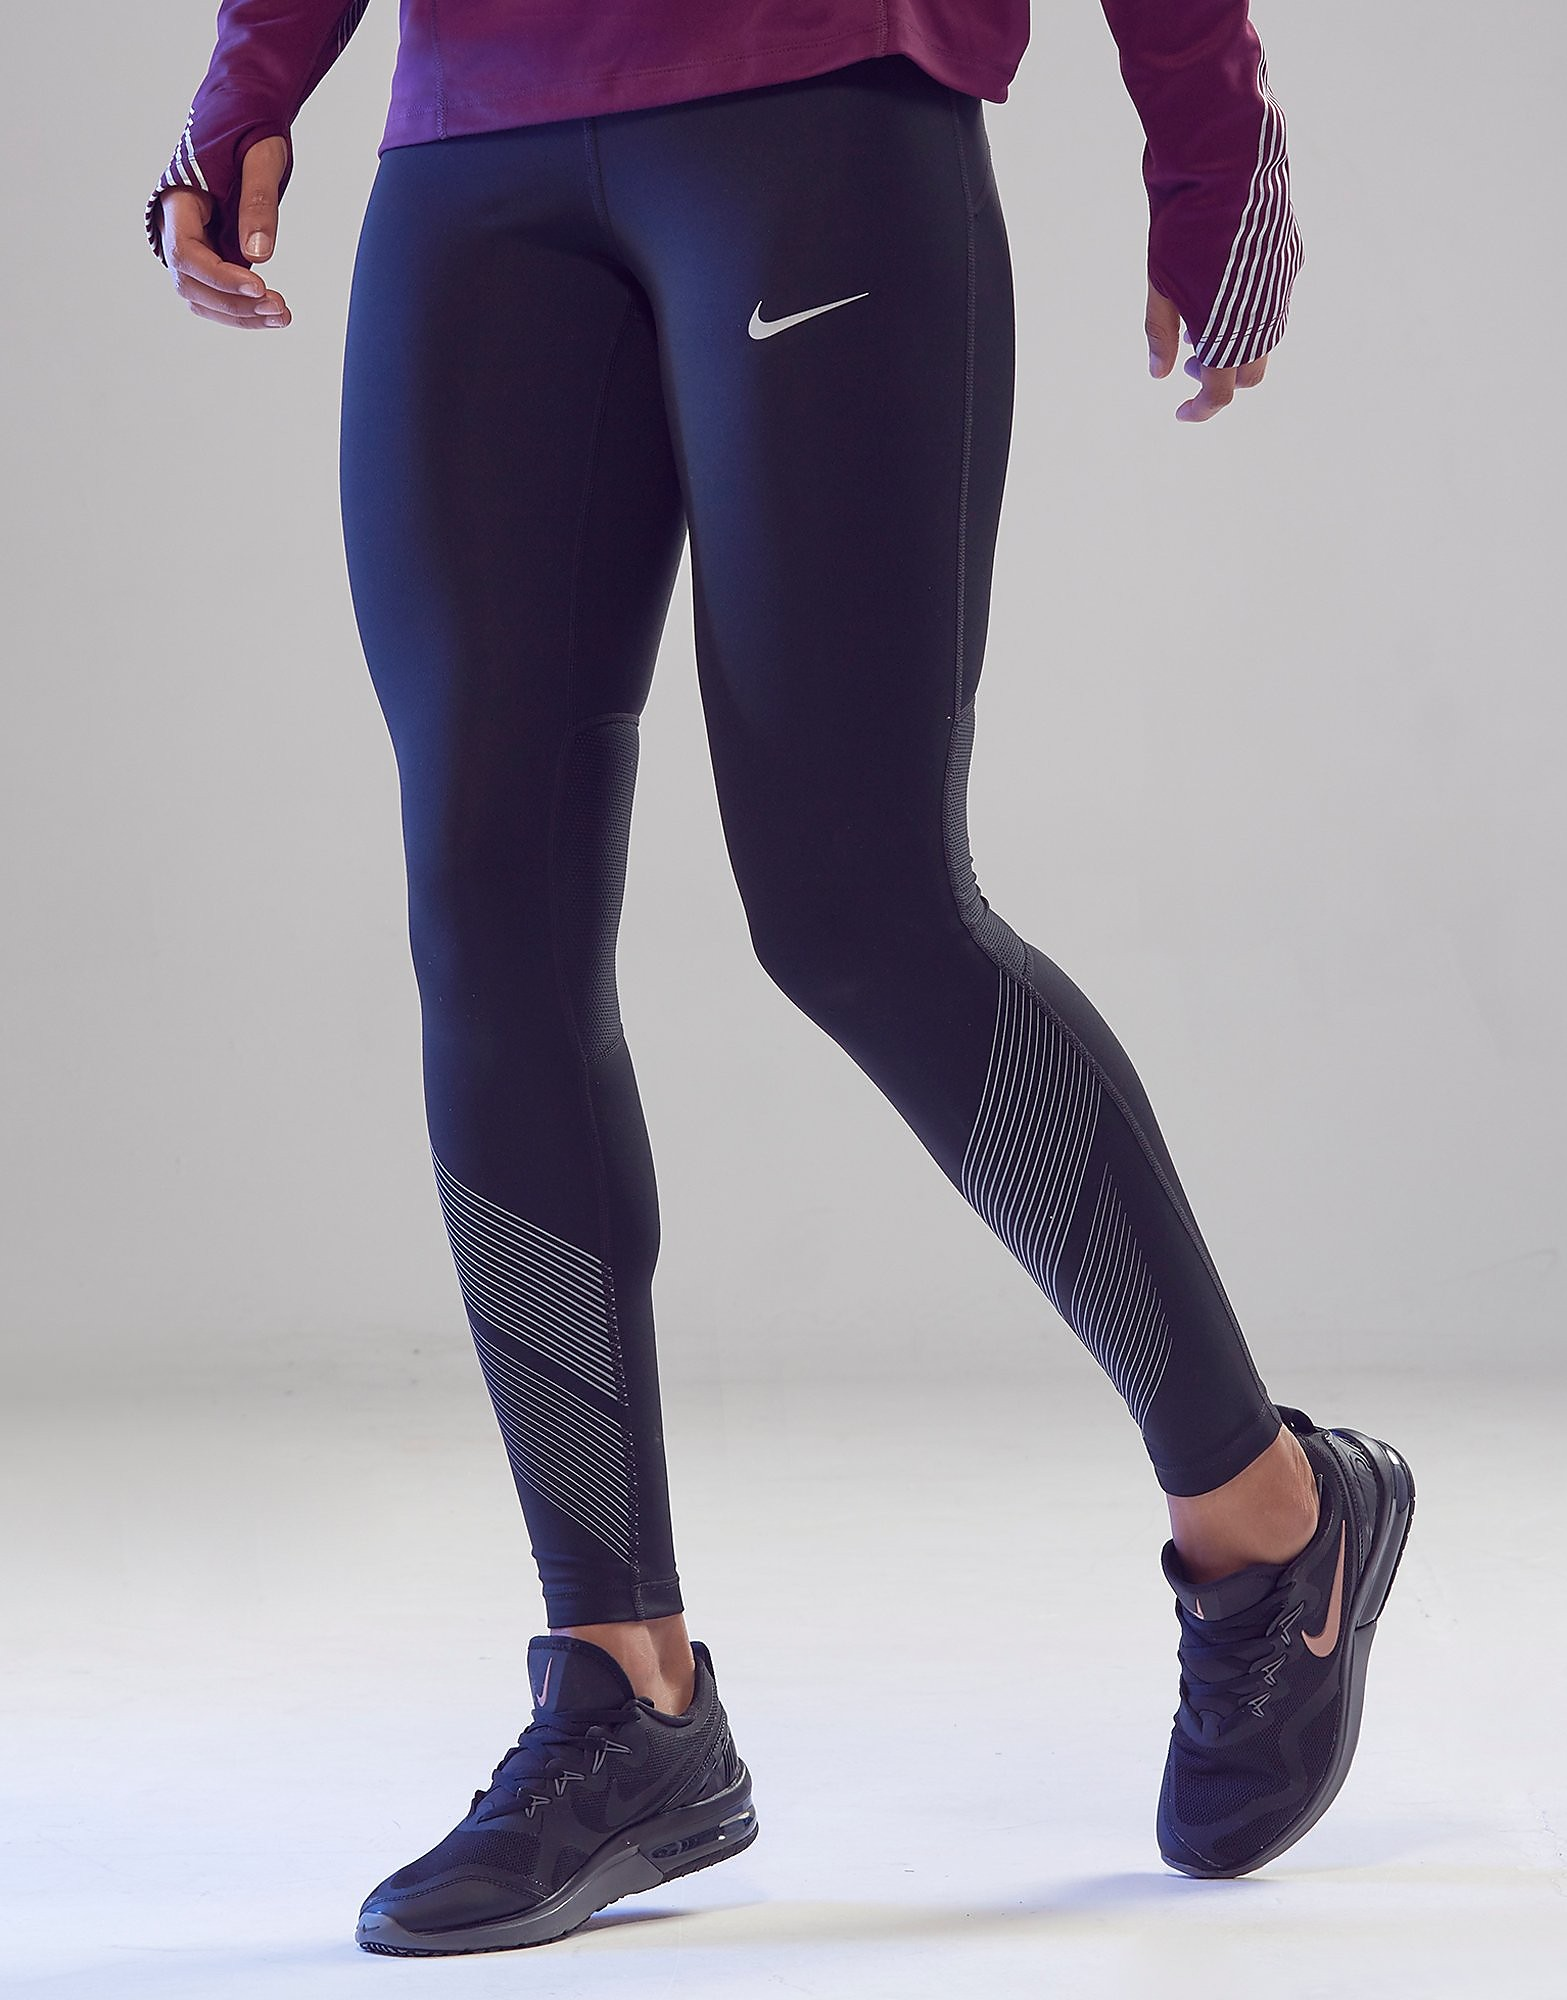 Nike Flash Racer Running Tights